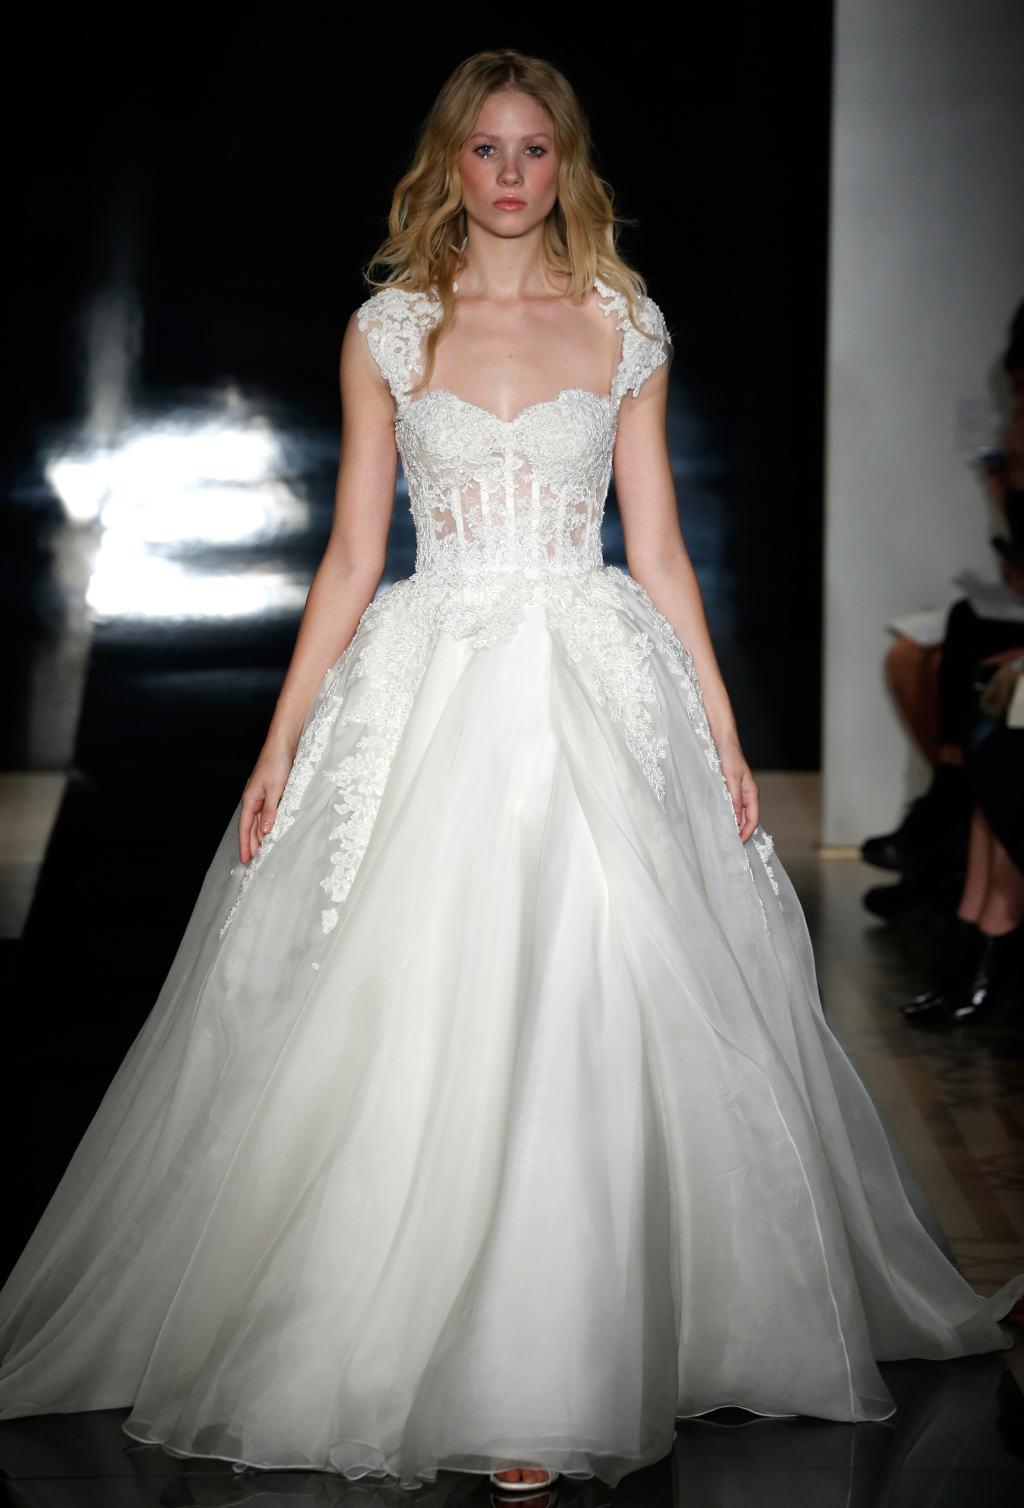 The talented reem acra featured her latest bridal collection for